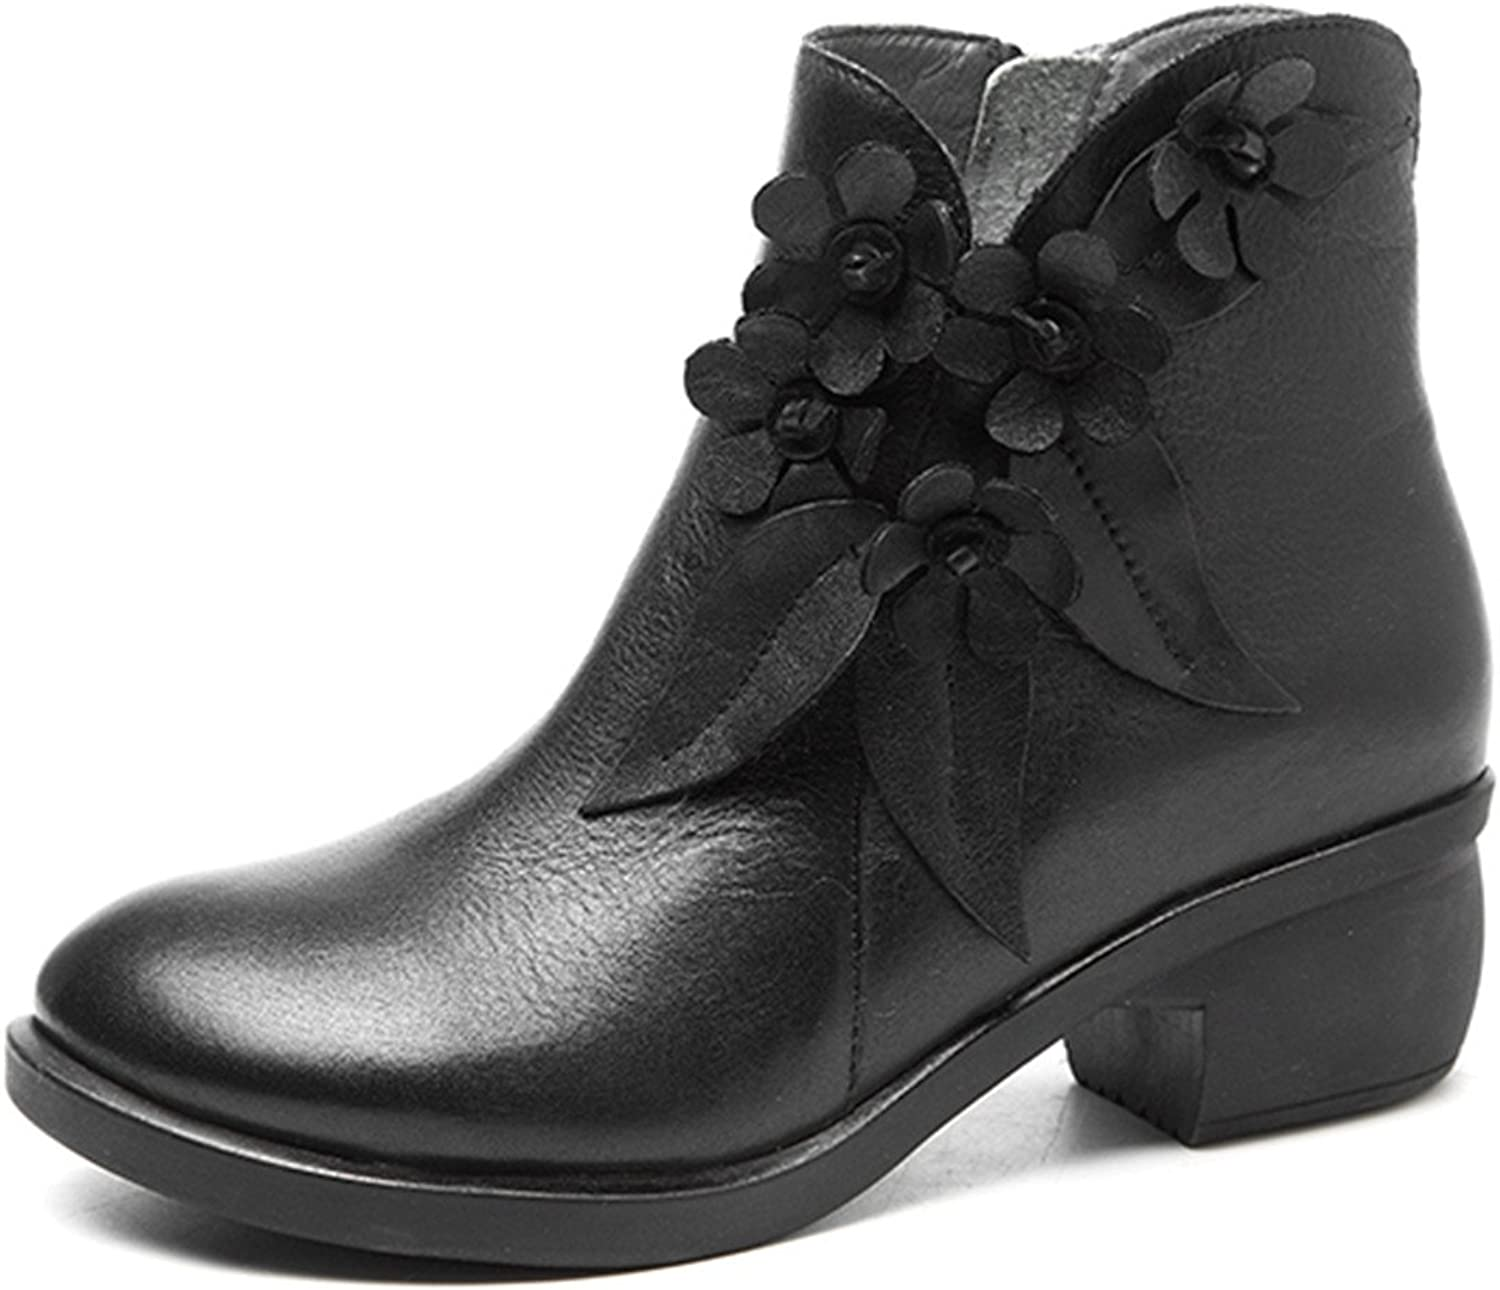 Socofy Leather Ankle Bootie, Women's Vintage Handmade Fashion Leather Boot pink Floral shoes Oxford Boots Black 9 B(M) US